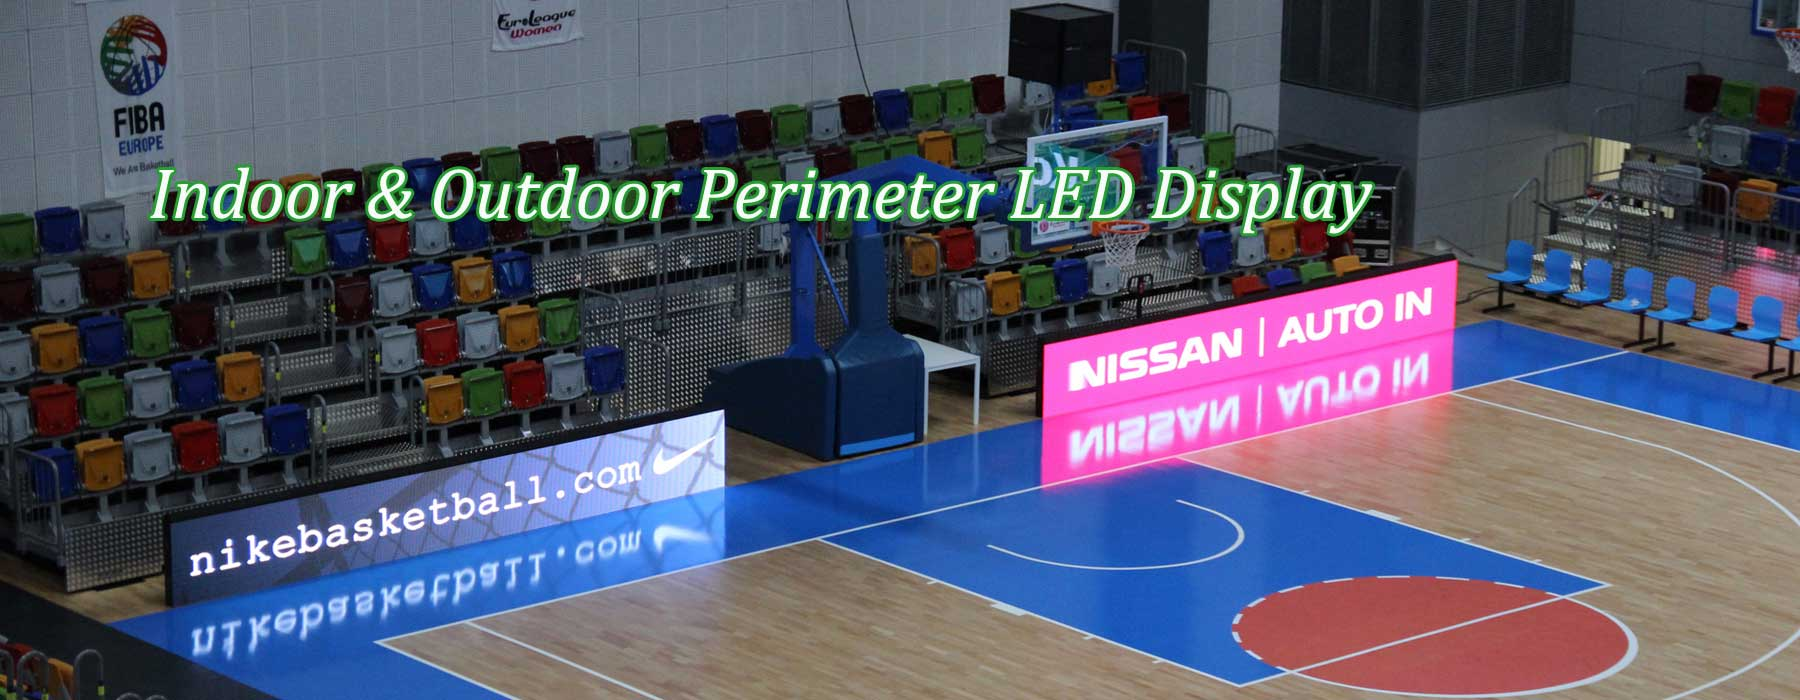 Perimeter-LED-Display1